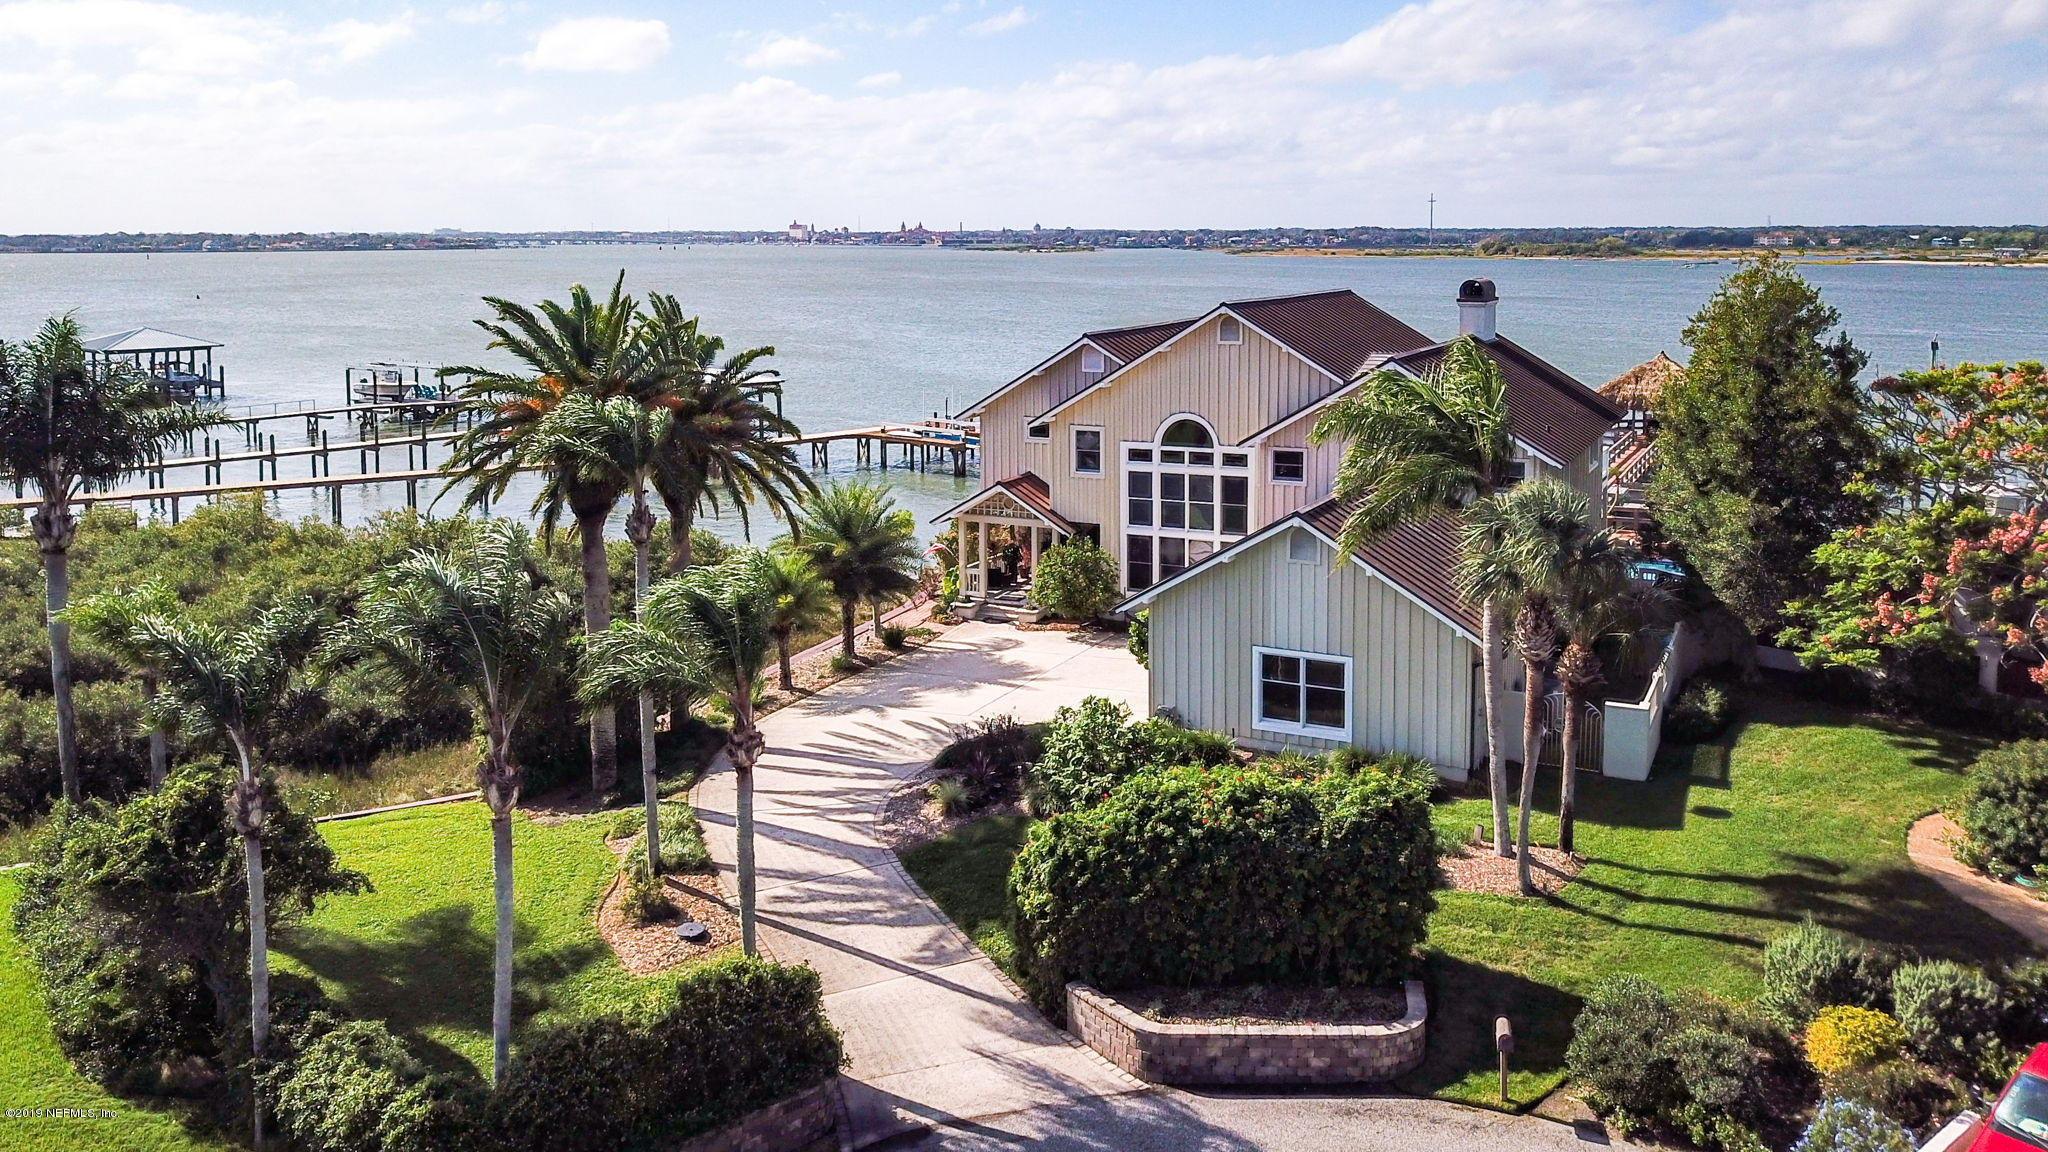 2721 HARBOR, ST AUGUSTINE, FLORIDA 32084, 5 Bedrooms Bedrooms, ,6 BathroomsBathrooms,Residential,For sale,HARBOR,1024699